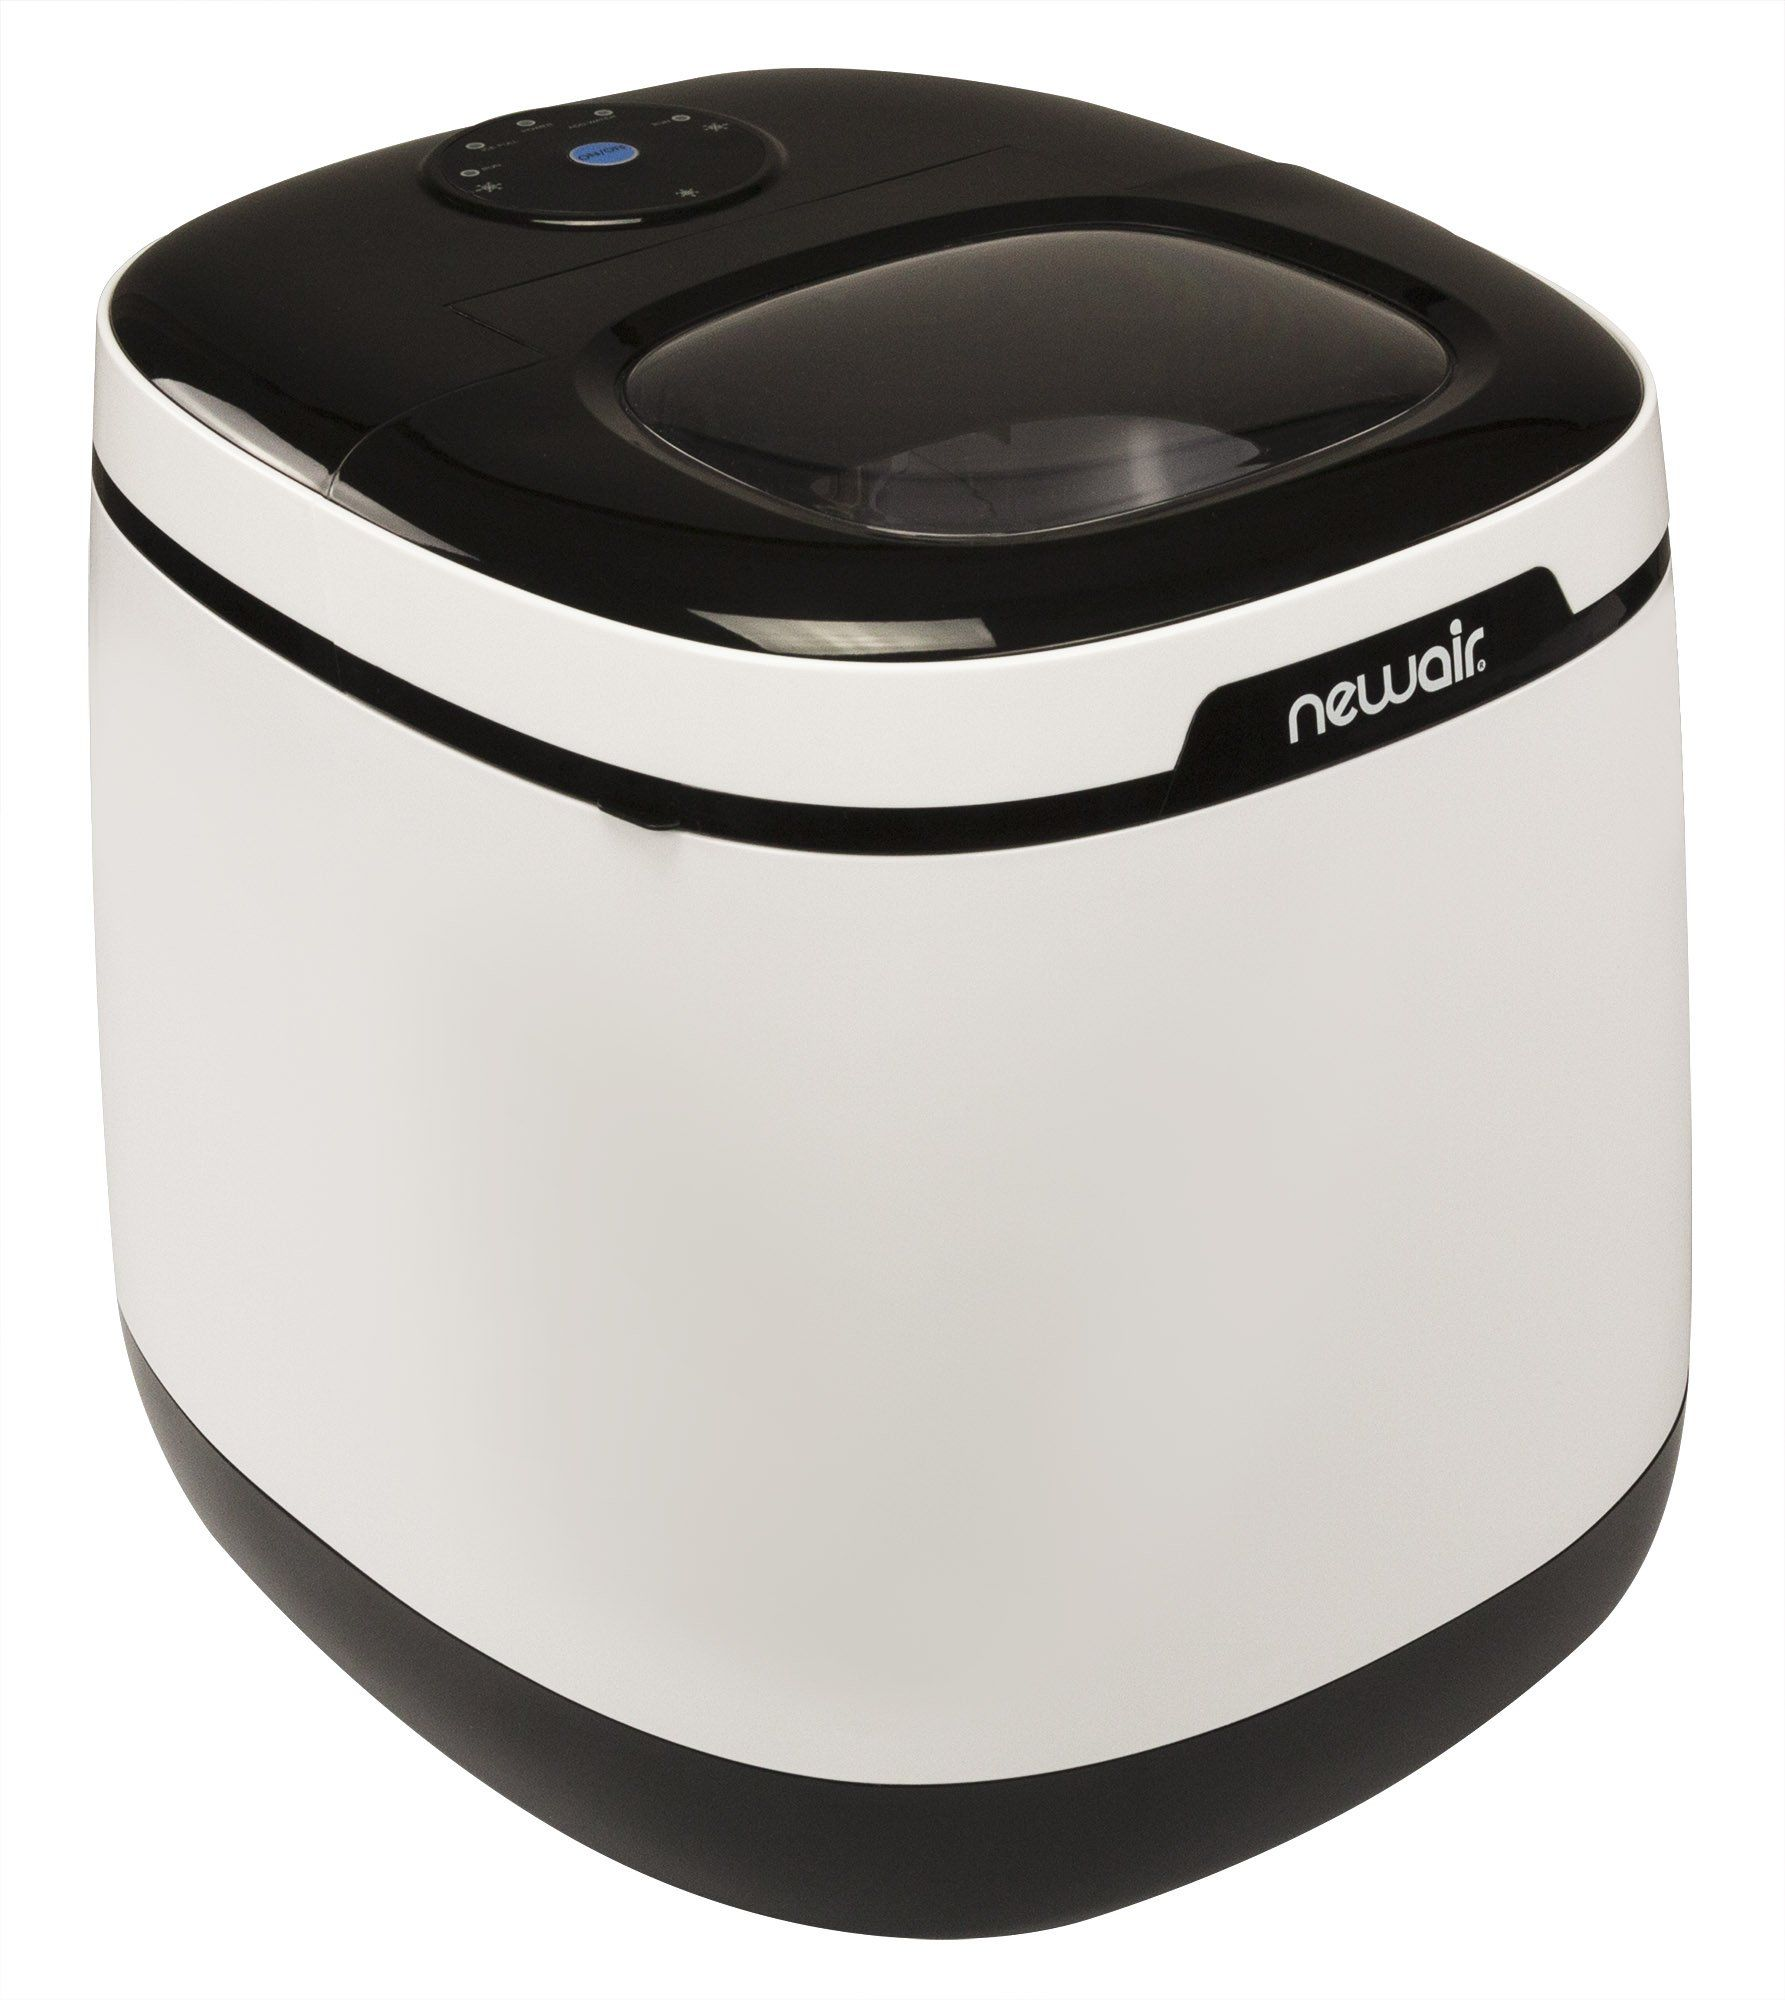 Newair Countertop Ice Maker 50 Lbs Of Ice A Day In 2020